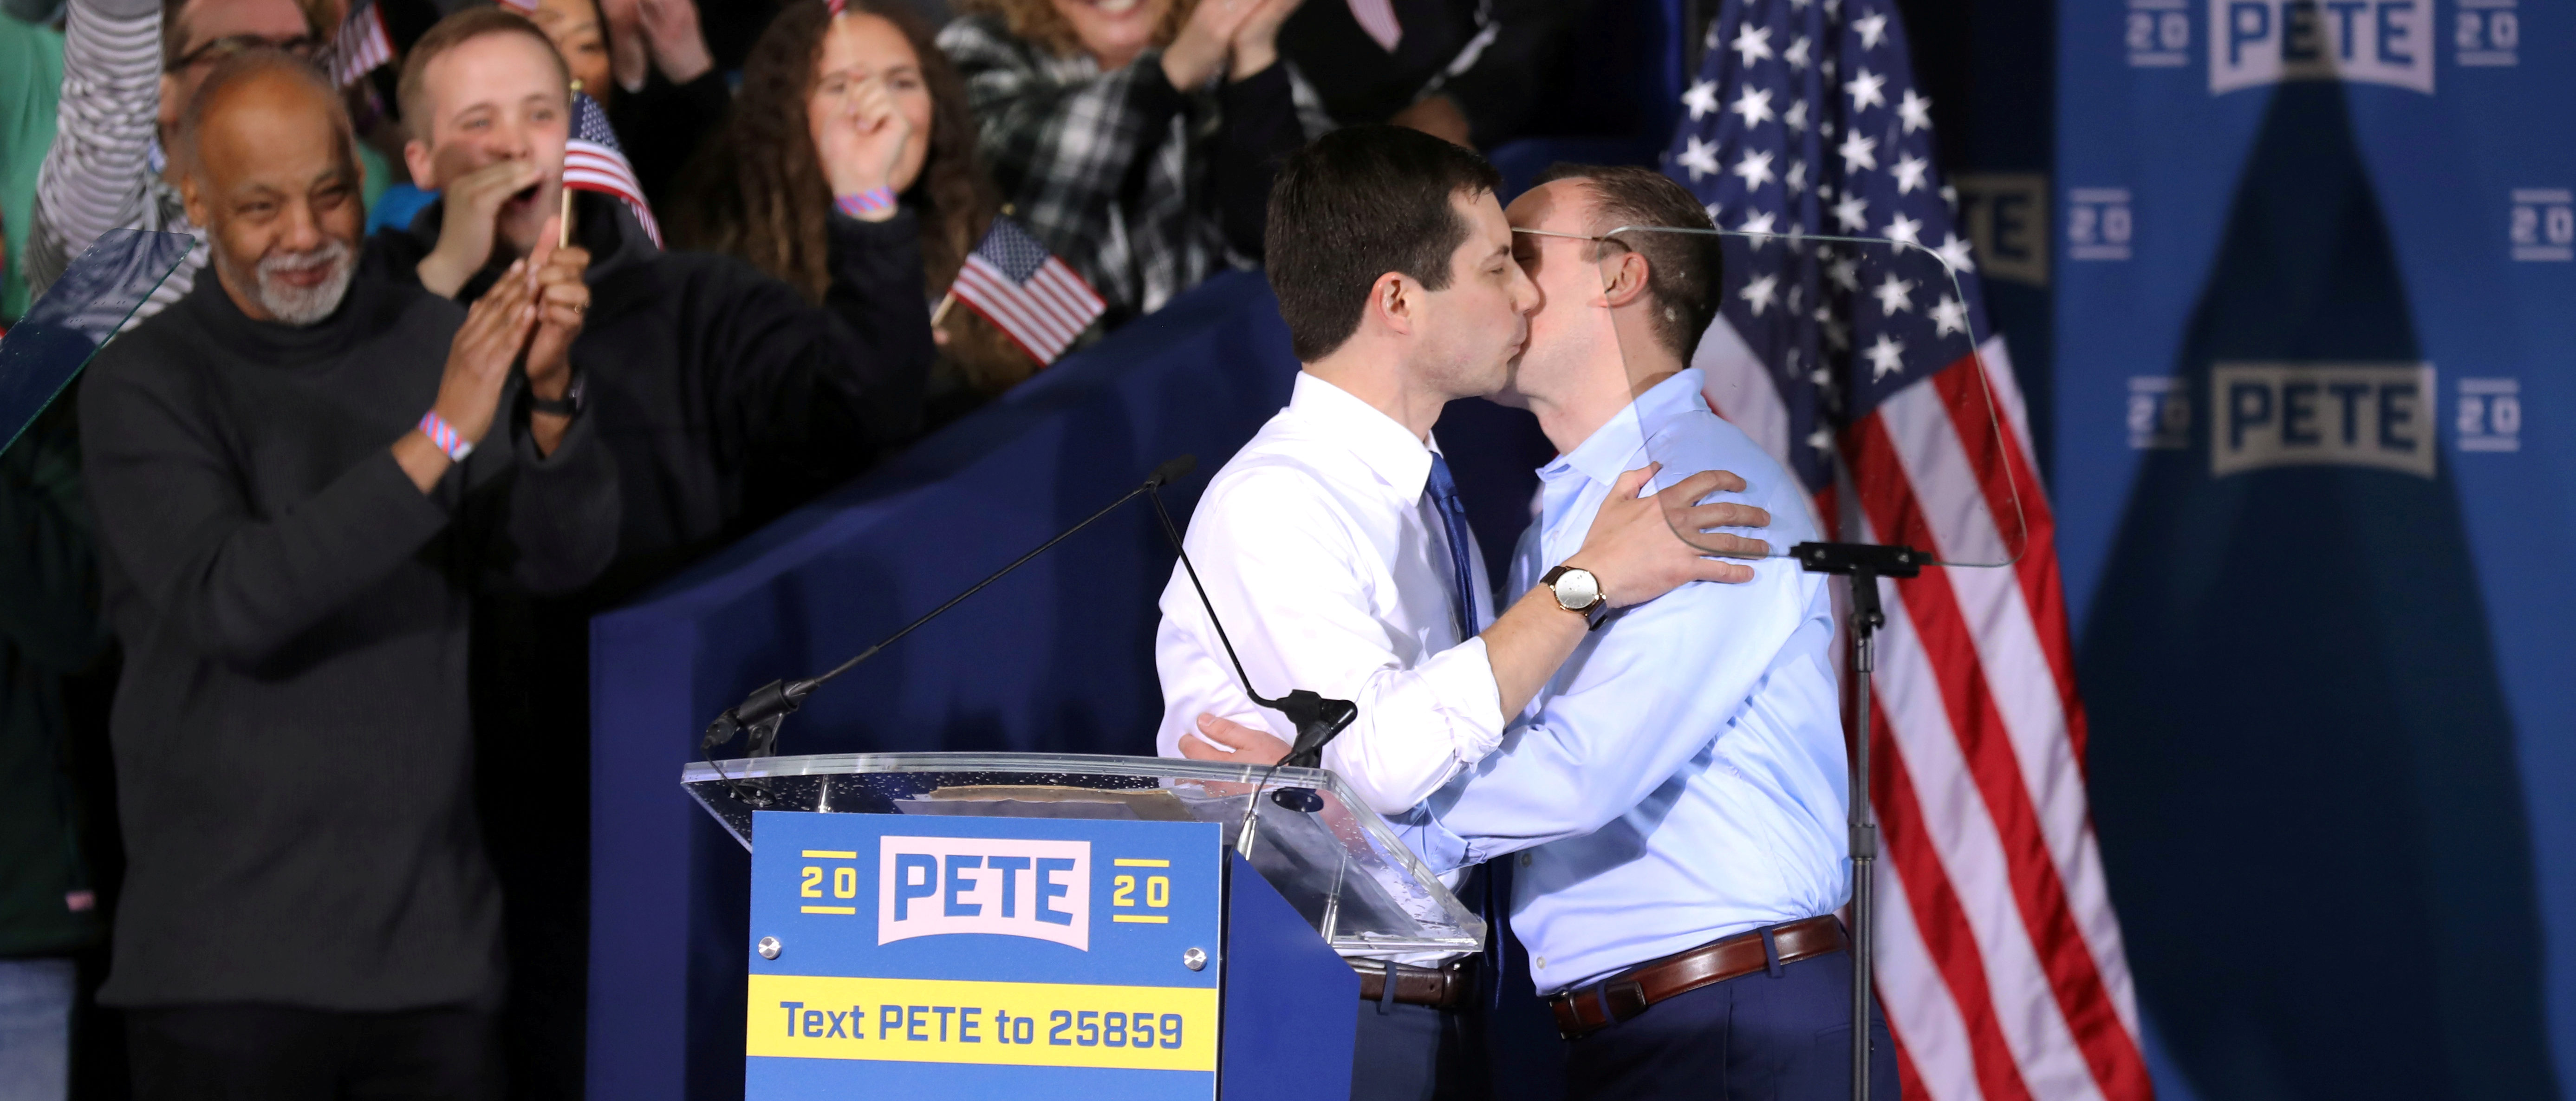 South Bend's Mayor Pete Buttigieg and his husband Chasten Buttigieg kiss as they attend a rally to announce Pete Buttigieg's 2020 Democratic presidential candidacy in South Bend, Indiana, U.S., April 14, 2019. REUTERS/John Gress